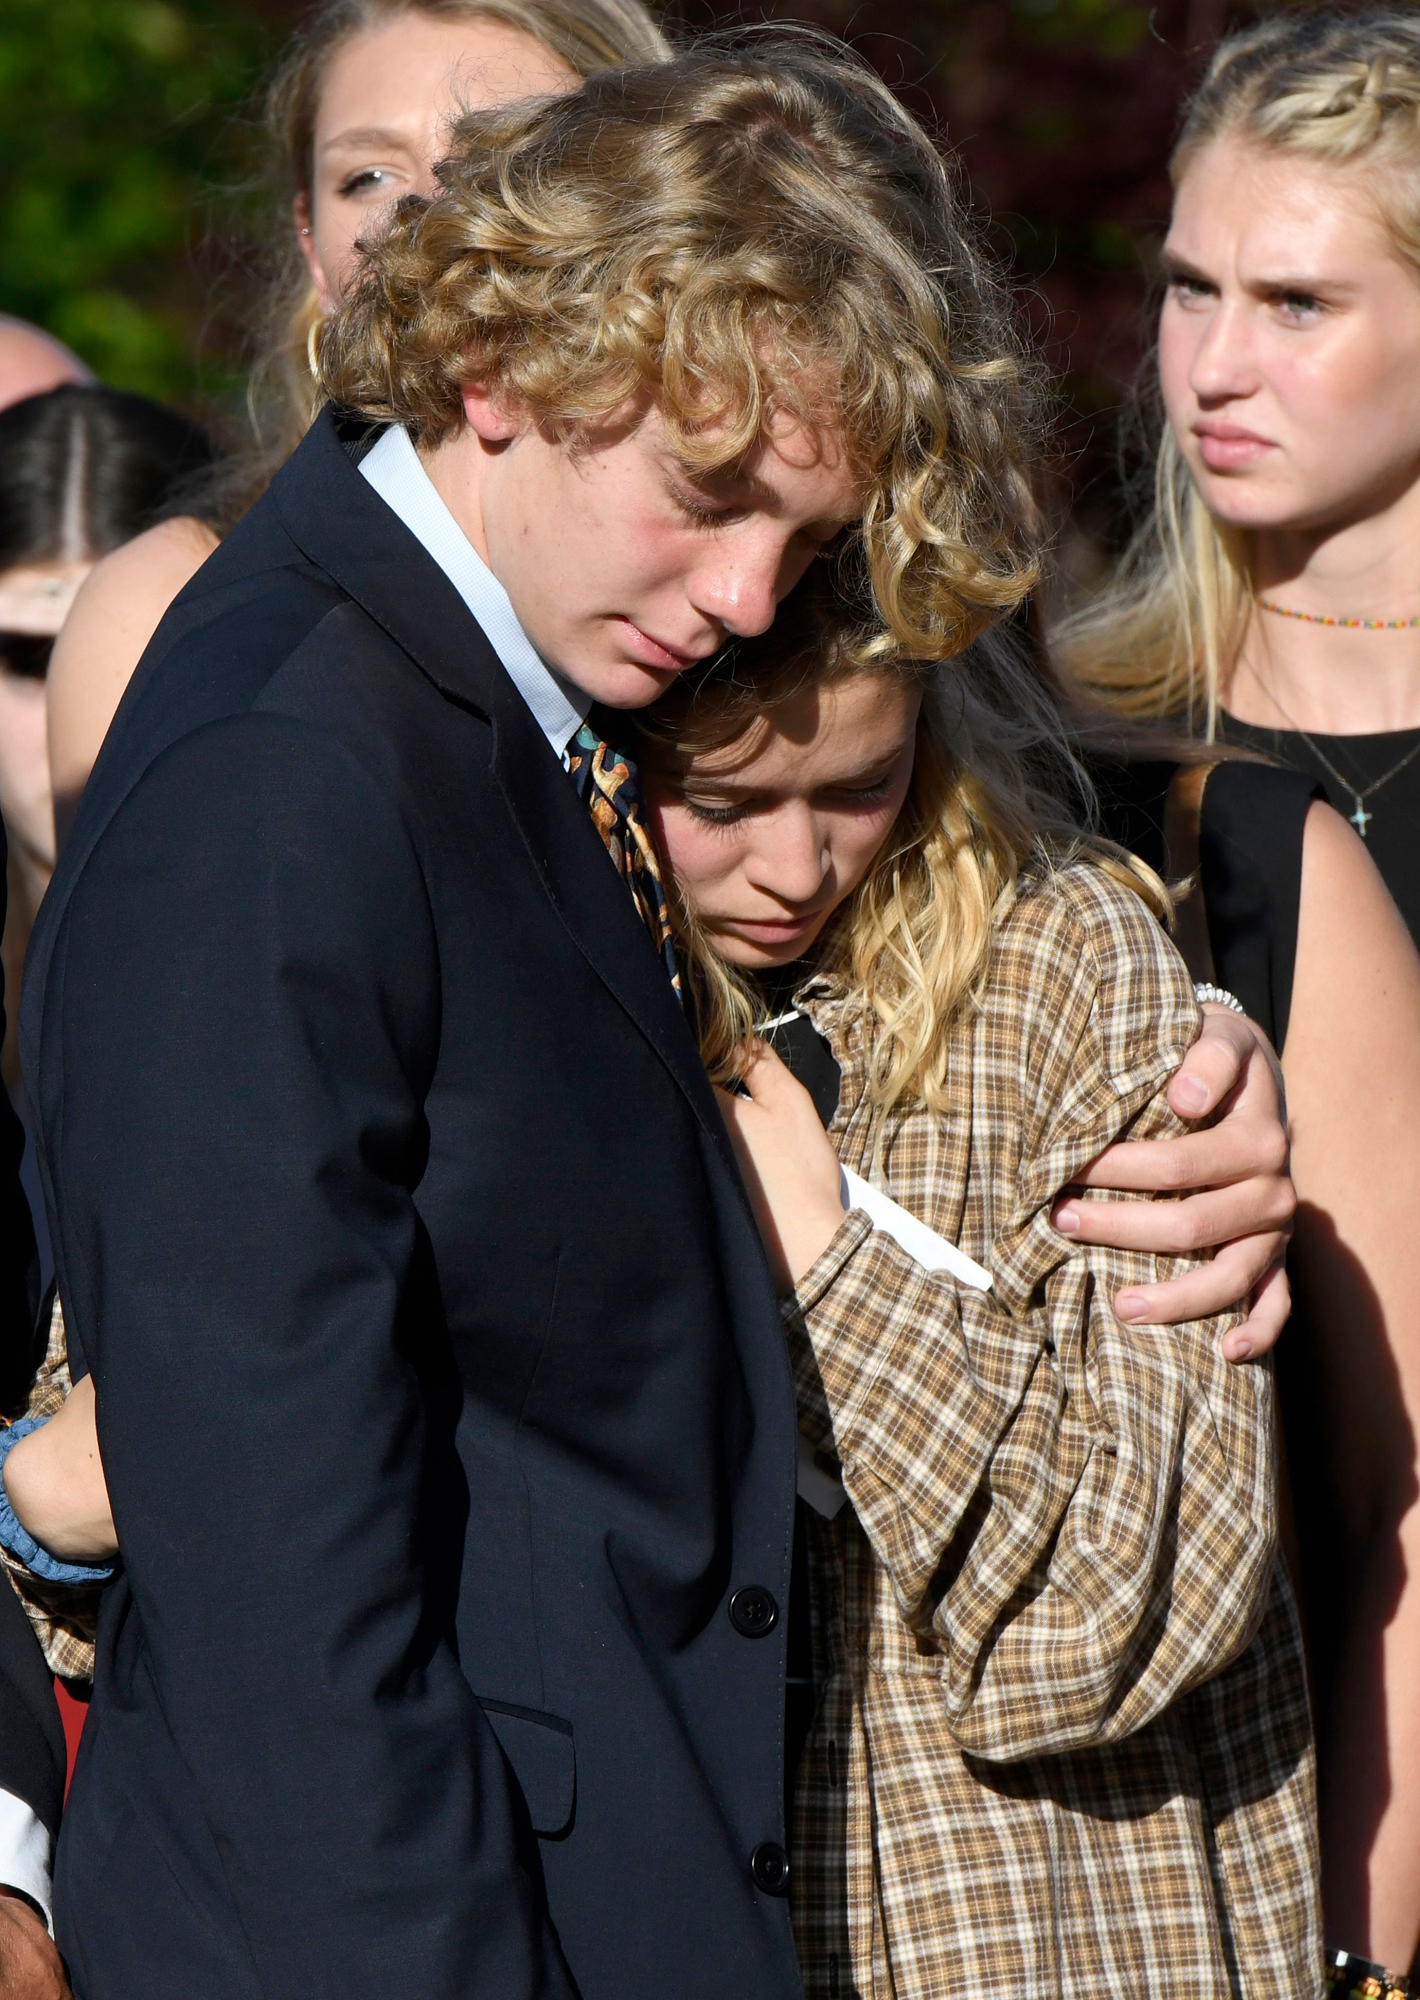 Riley Howell funeral